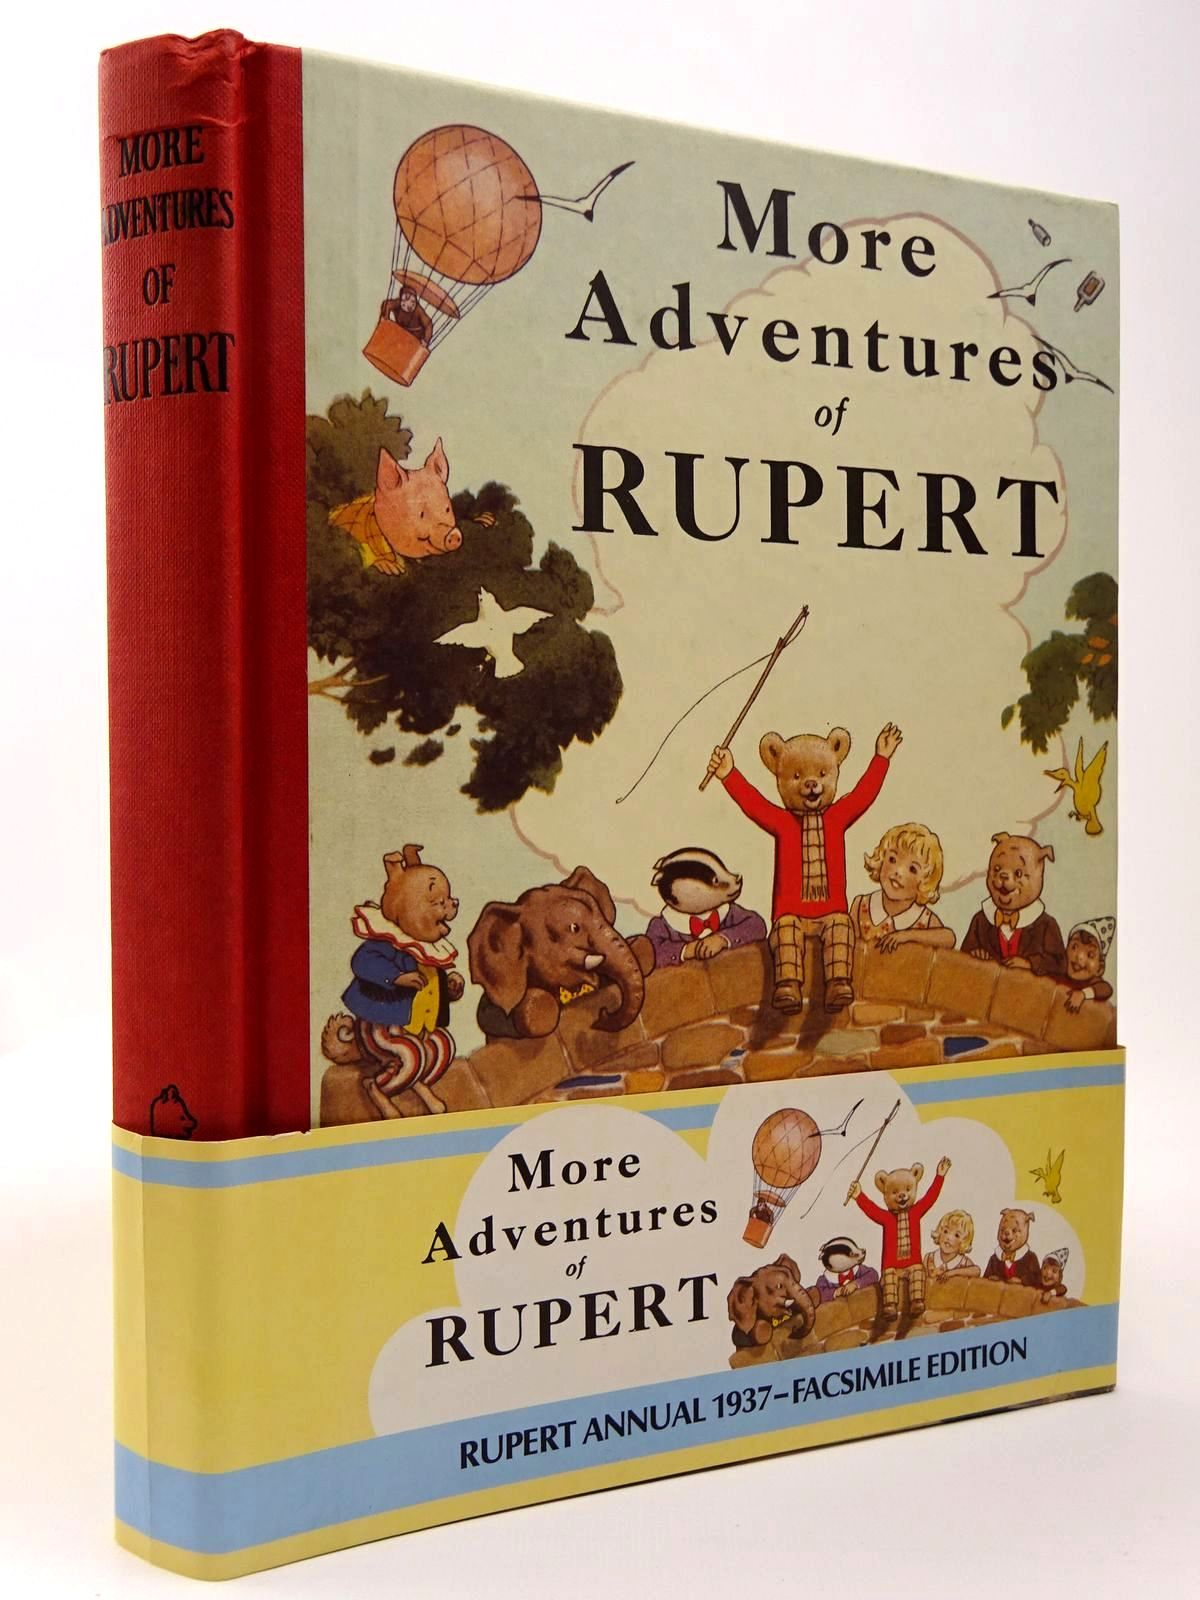 Photo of RUPERT ANNUAL 1937 (FACSIMILE) - MORE ADVENTURES OF RUPERT written by Bestall, Alfred illustrated by Bestall, Alfred published by Express Newspapers Ltd. (STOCK CODE: 2129485)  for sale by Stella & Rose's Books